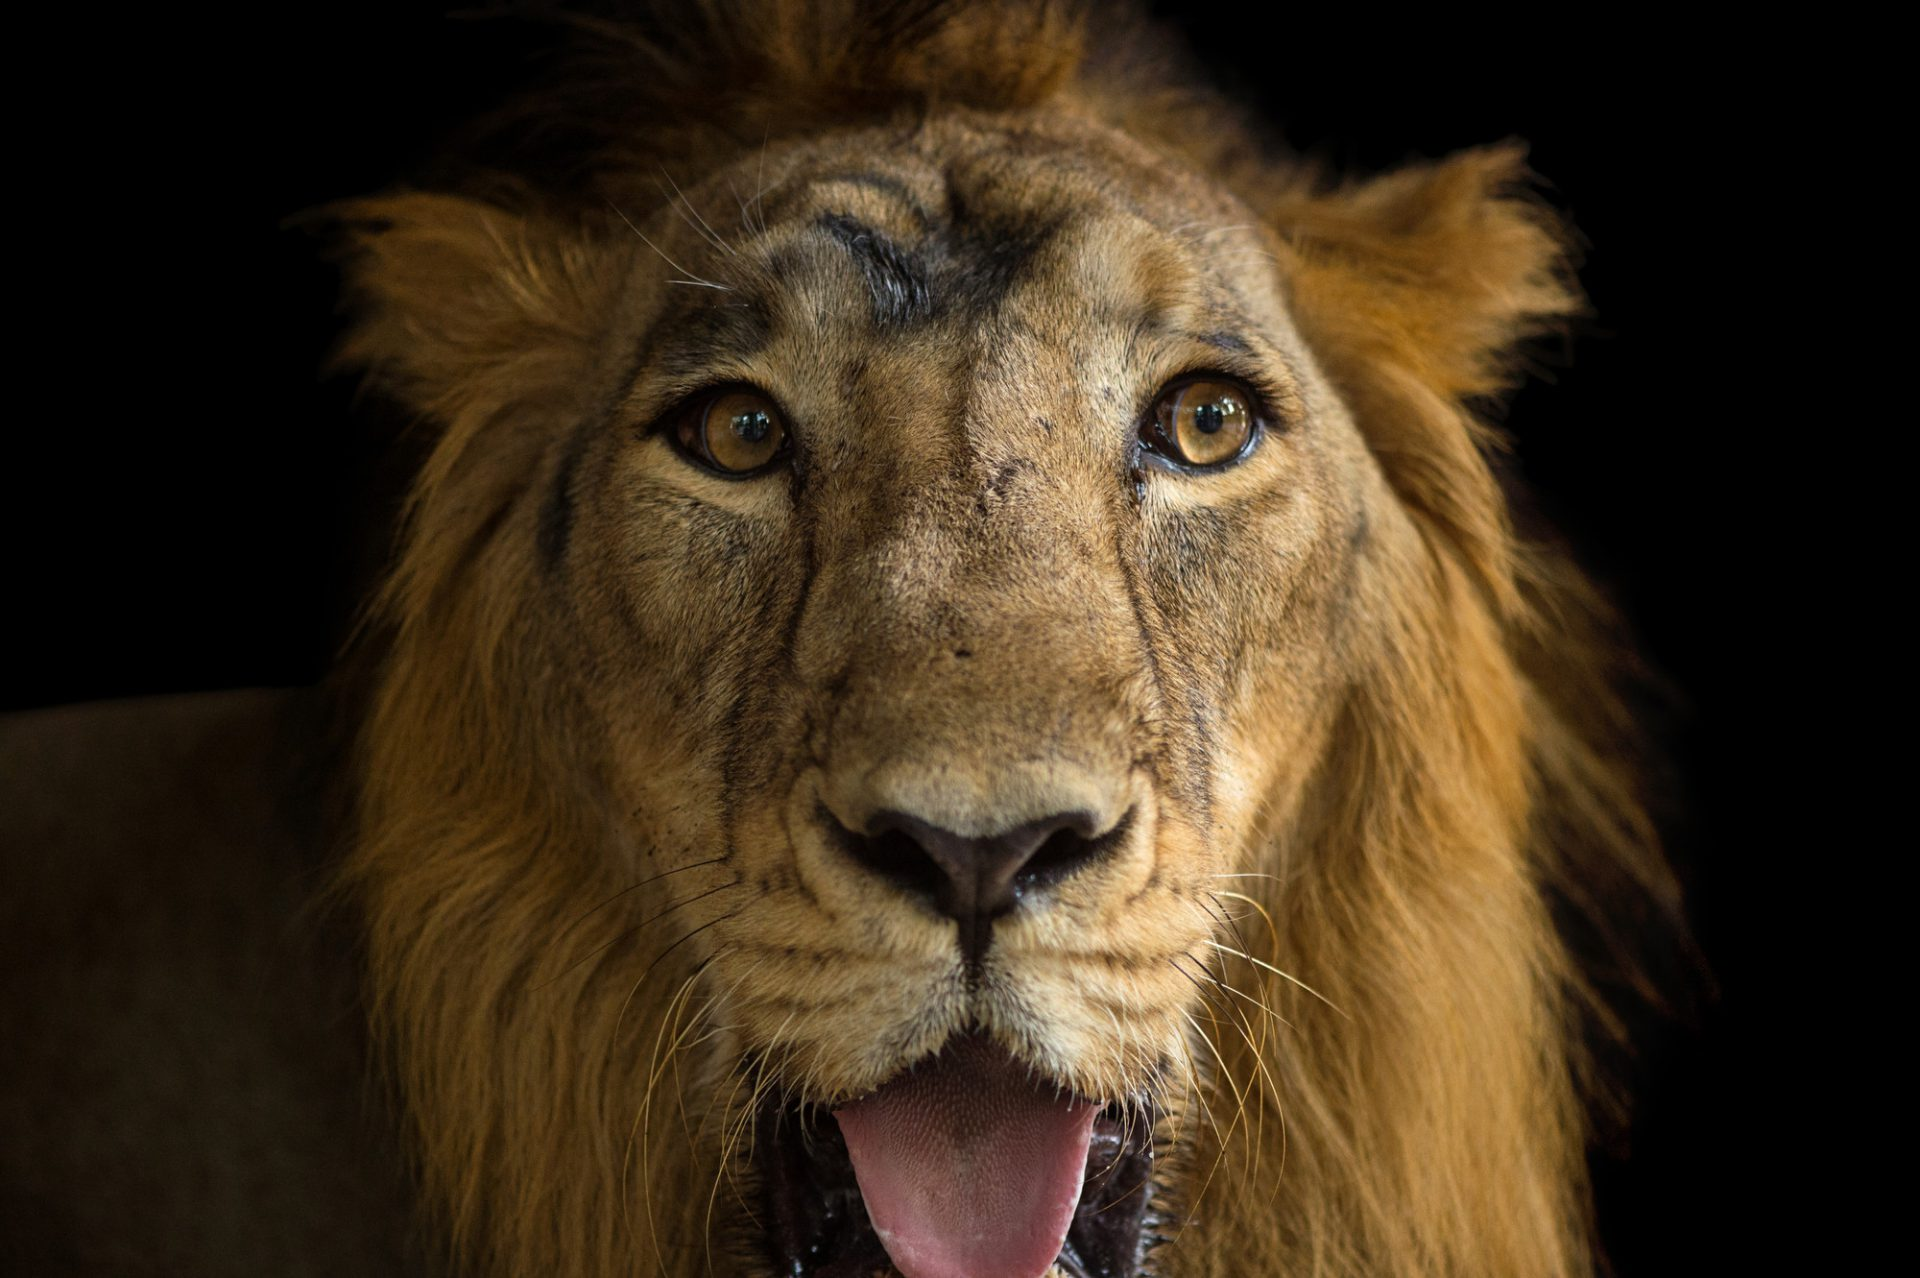 Picture of an endangered (IUCN) and federally endangered male Asiatic lion (Panthera leo persica) at Kamla Nehru Zoological Garden, Ahmedabad, India.